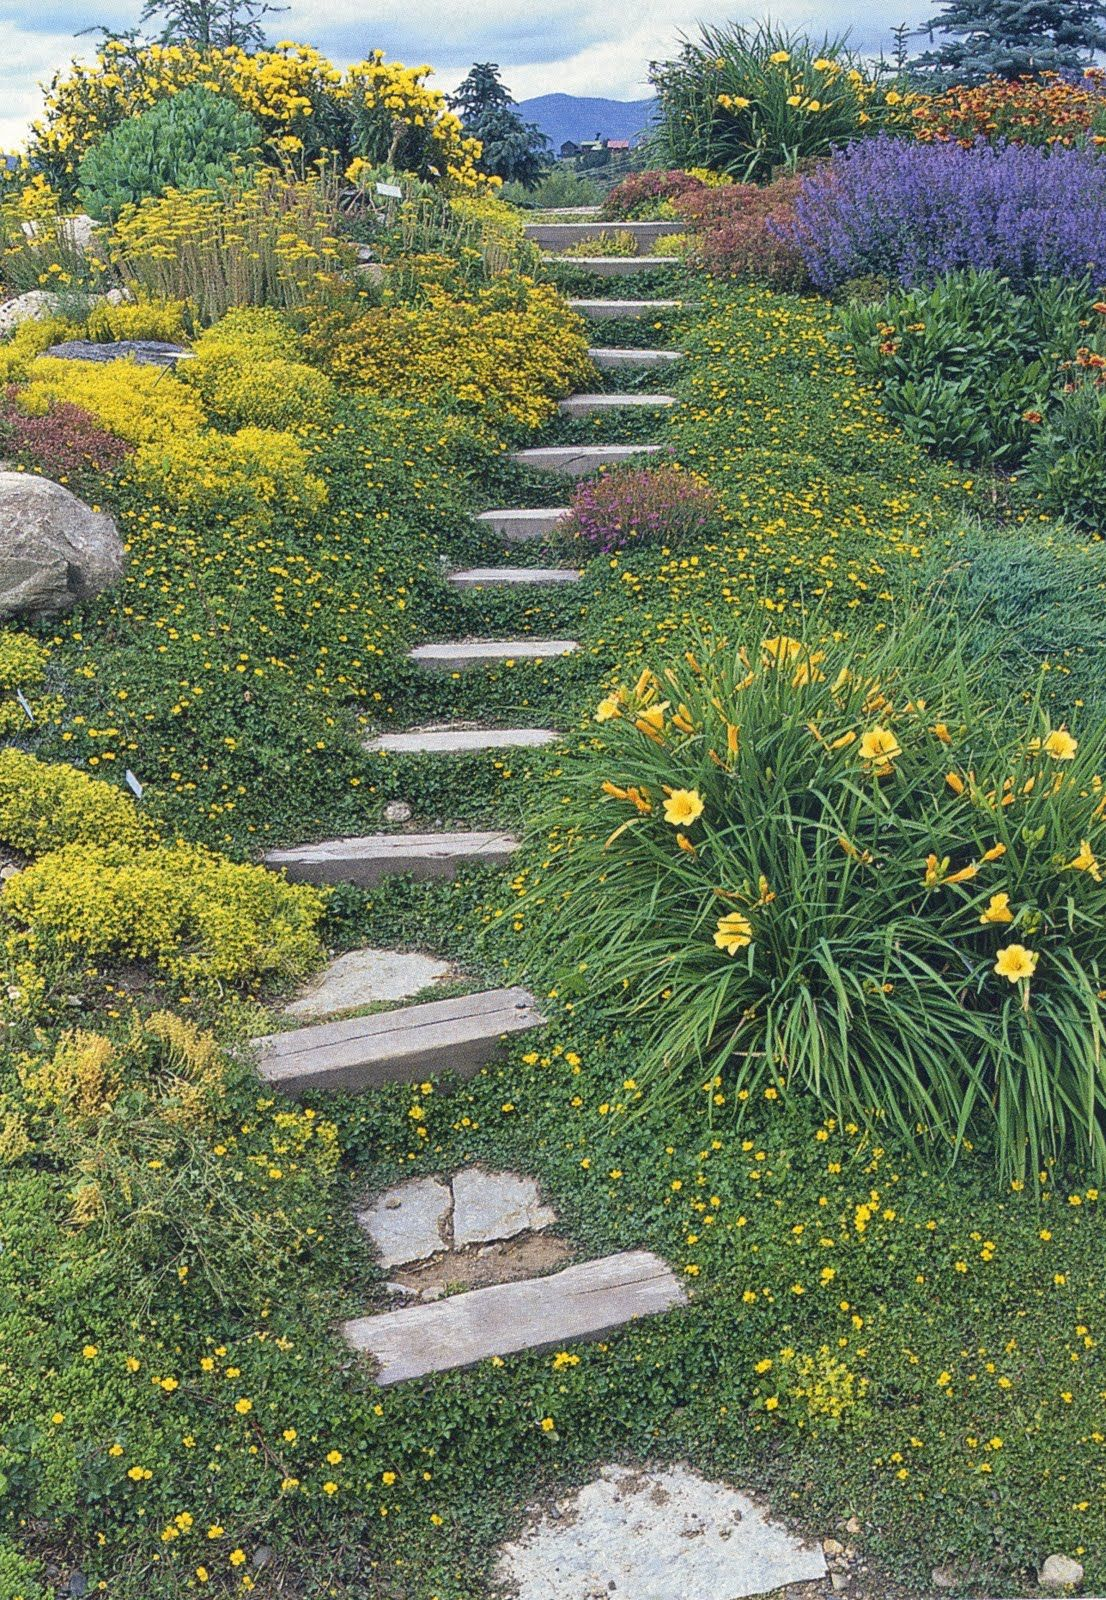 how+to+build+terraces+on+a+hillside | The most natural ... on Backyard Hill Landscaping Ideas id=35959